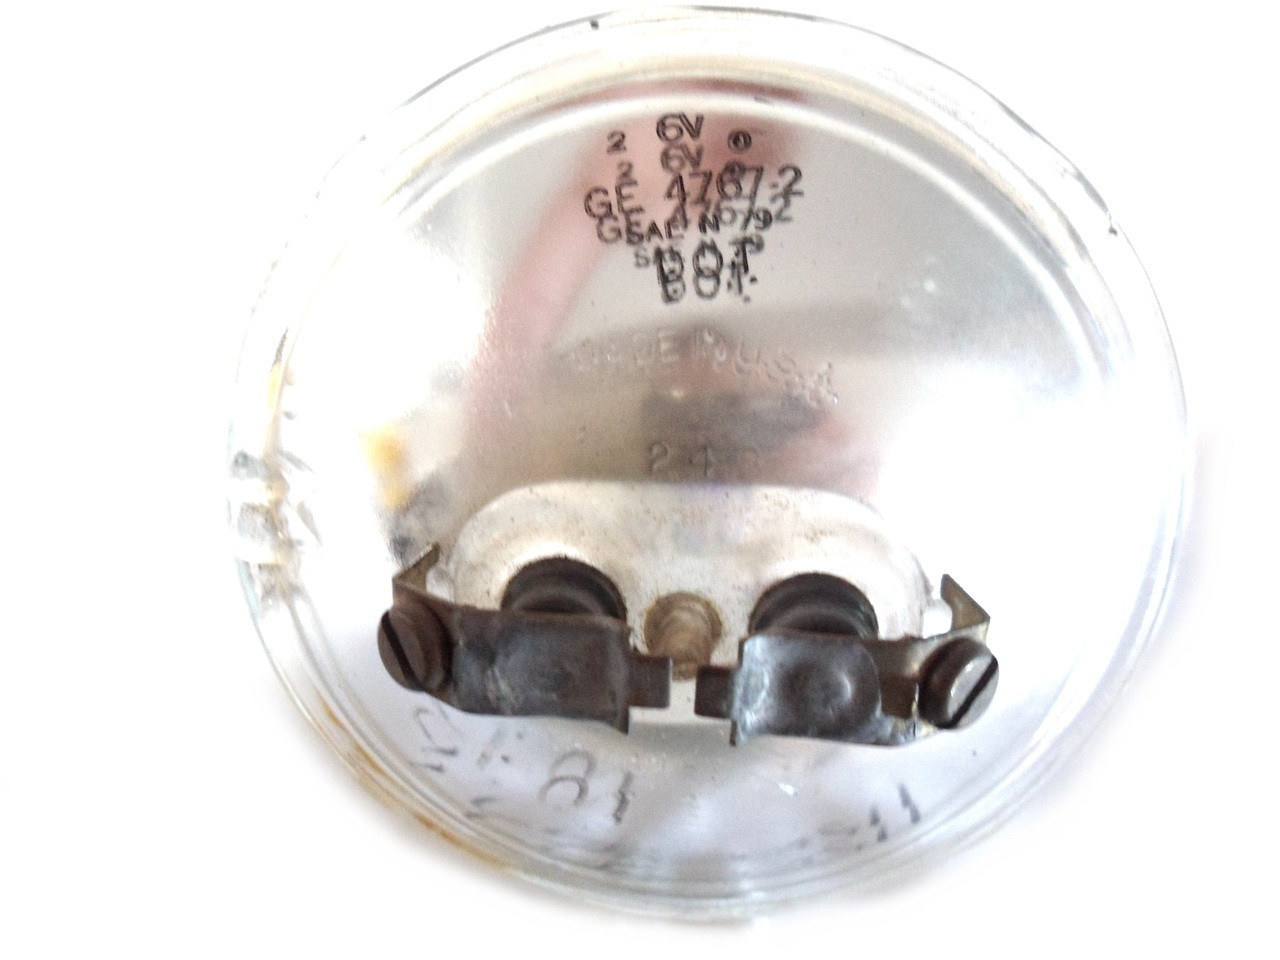 GE 6 volt 25w Sealed Beam Bulb - Style 2